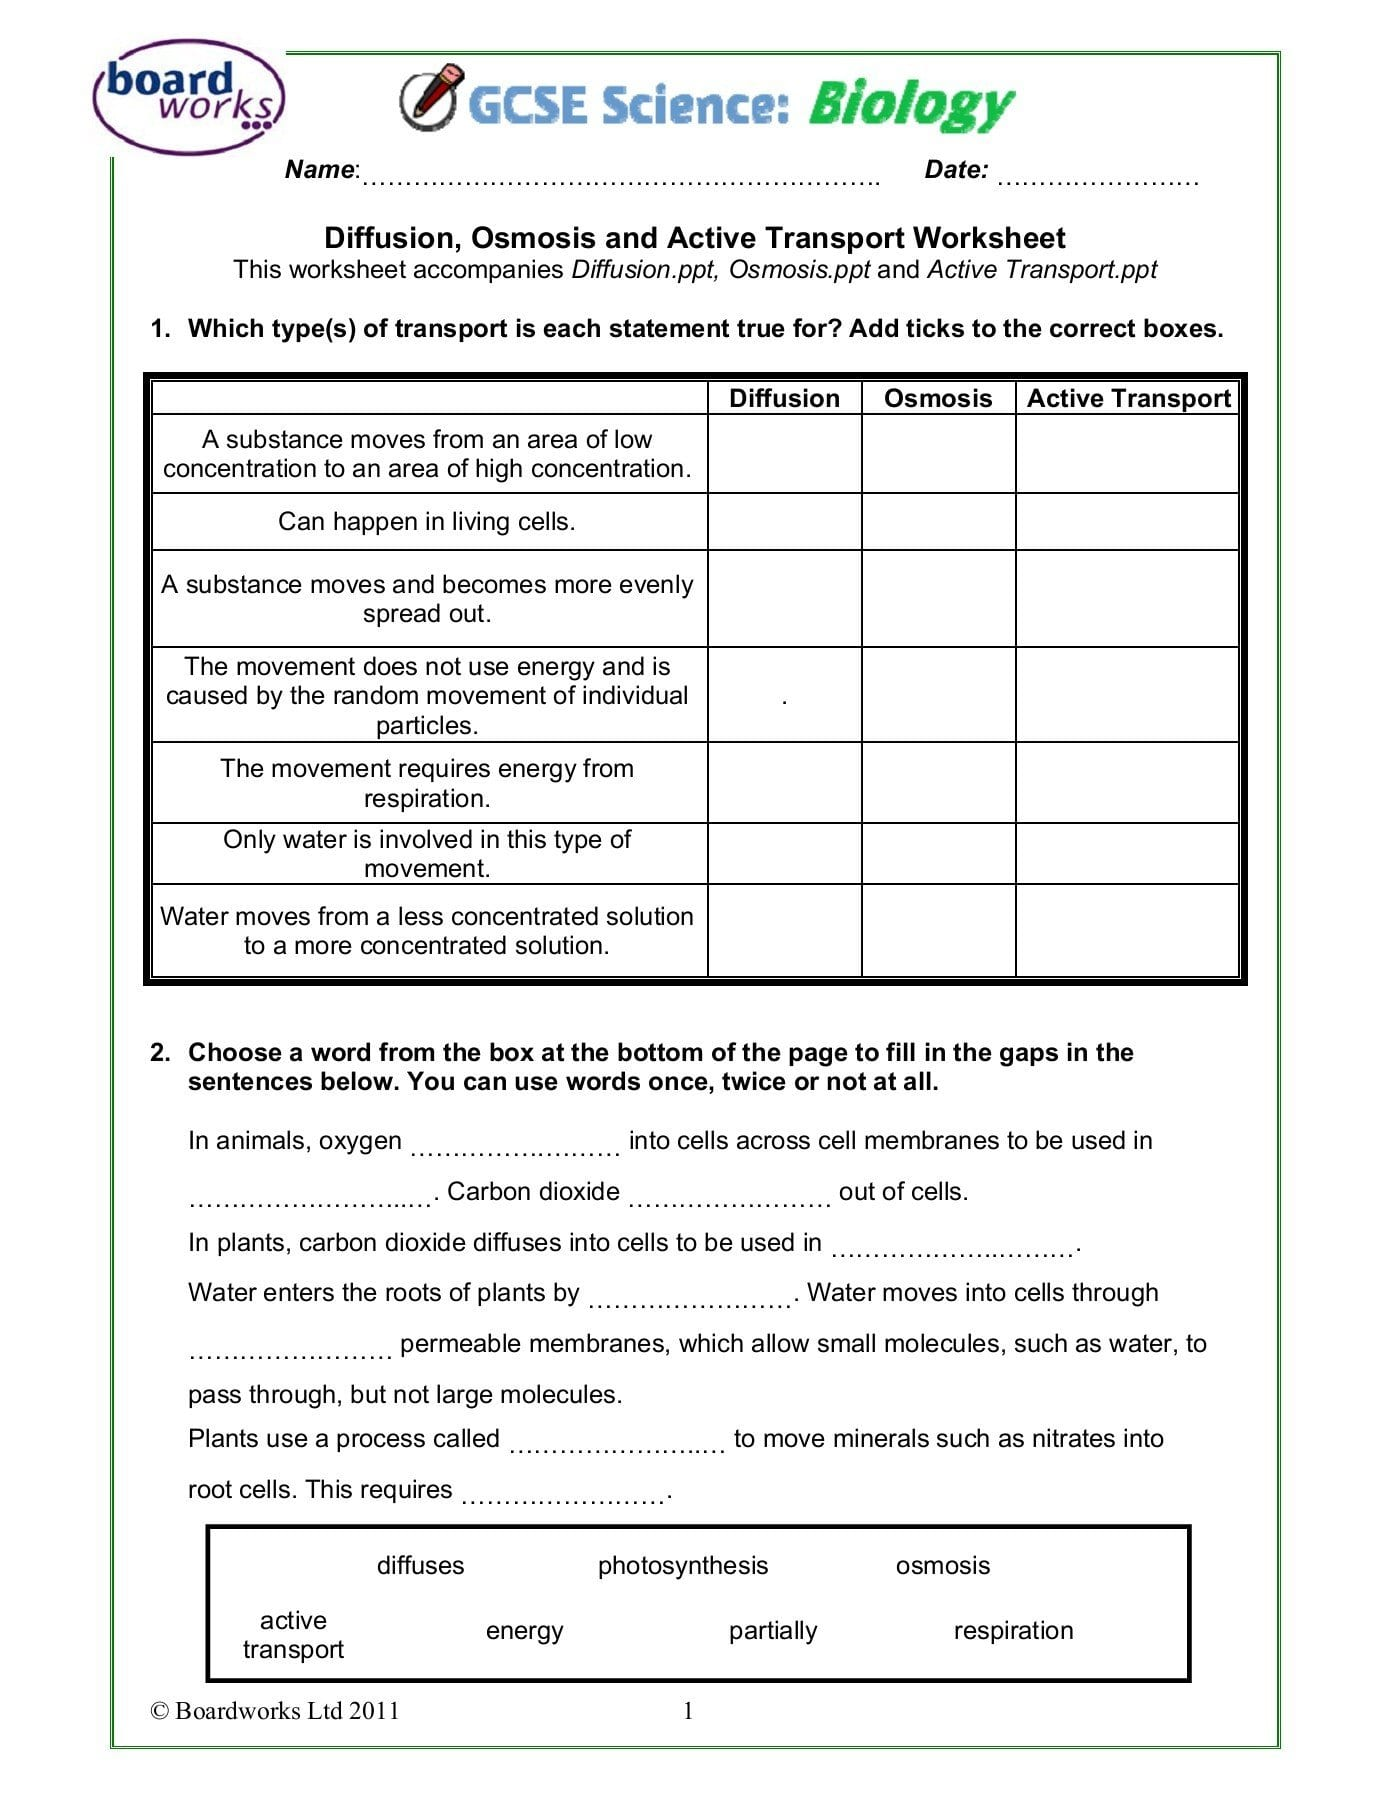 Active Transport Worksheet